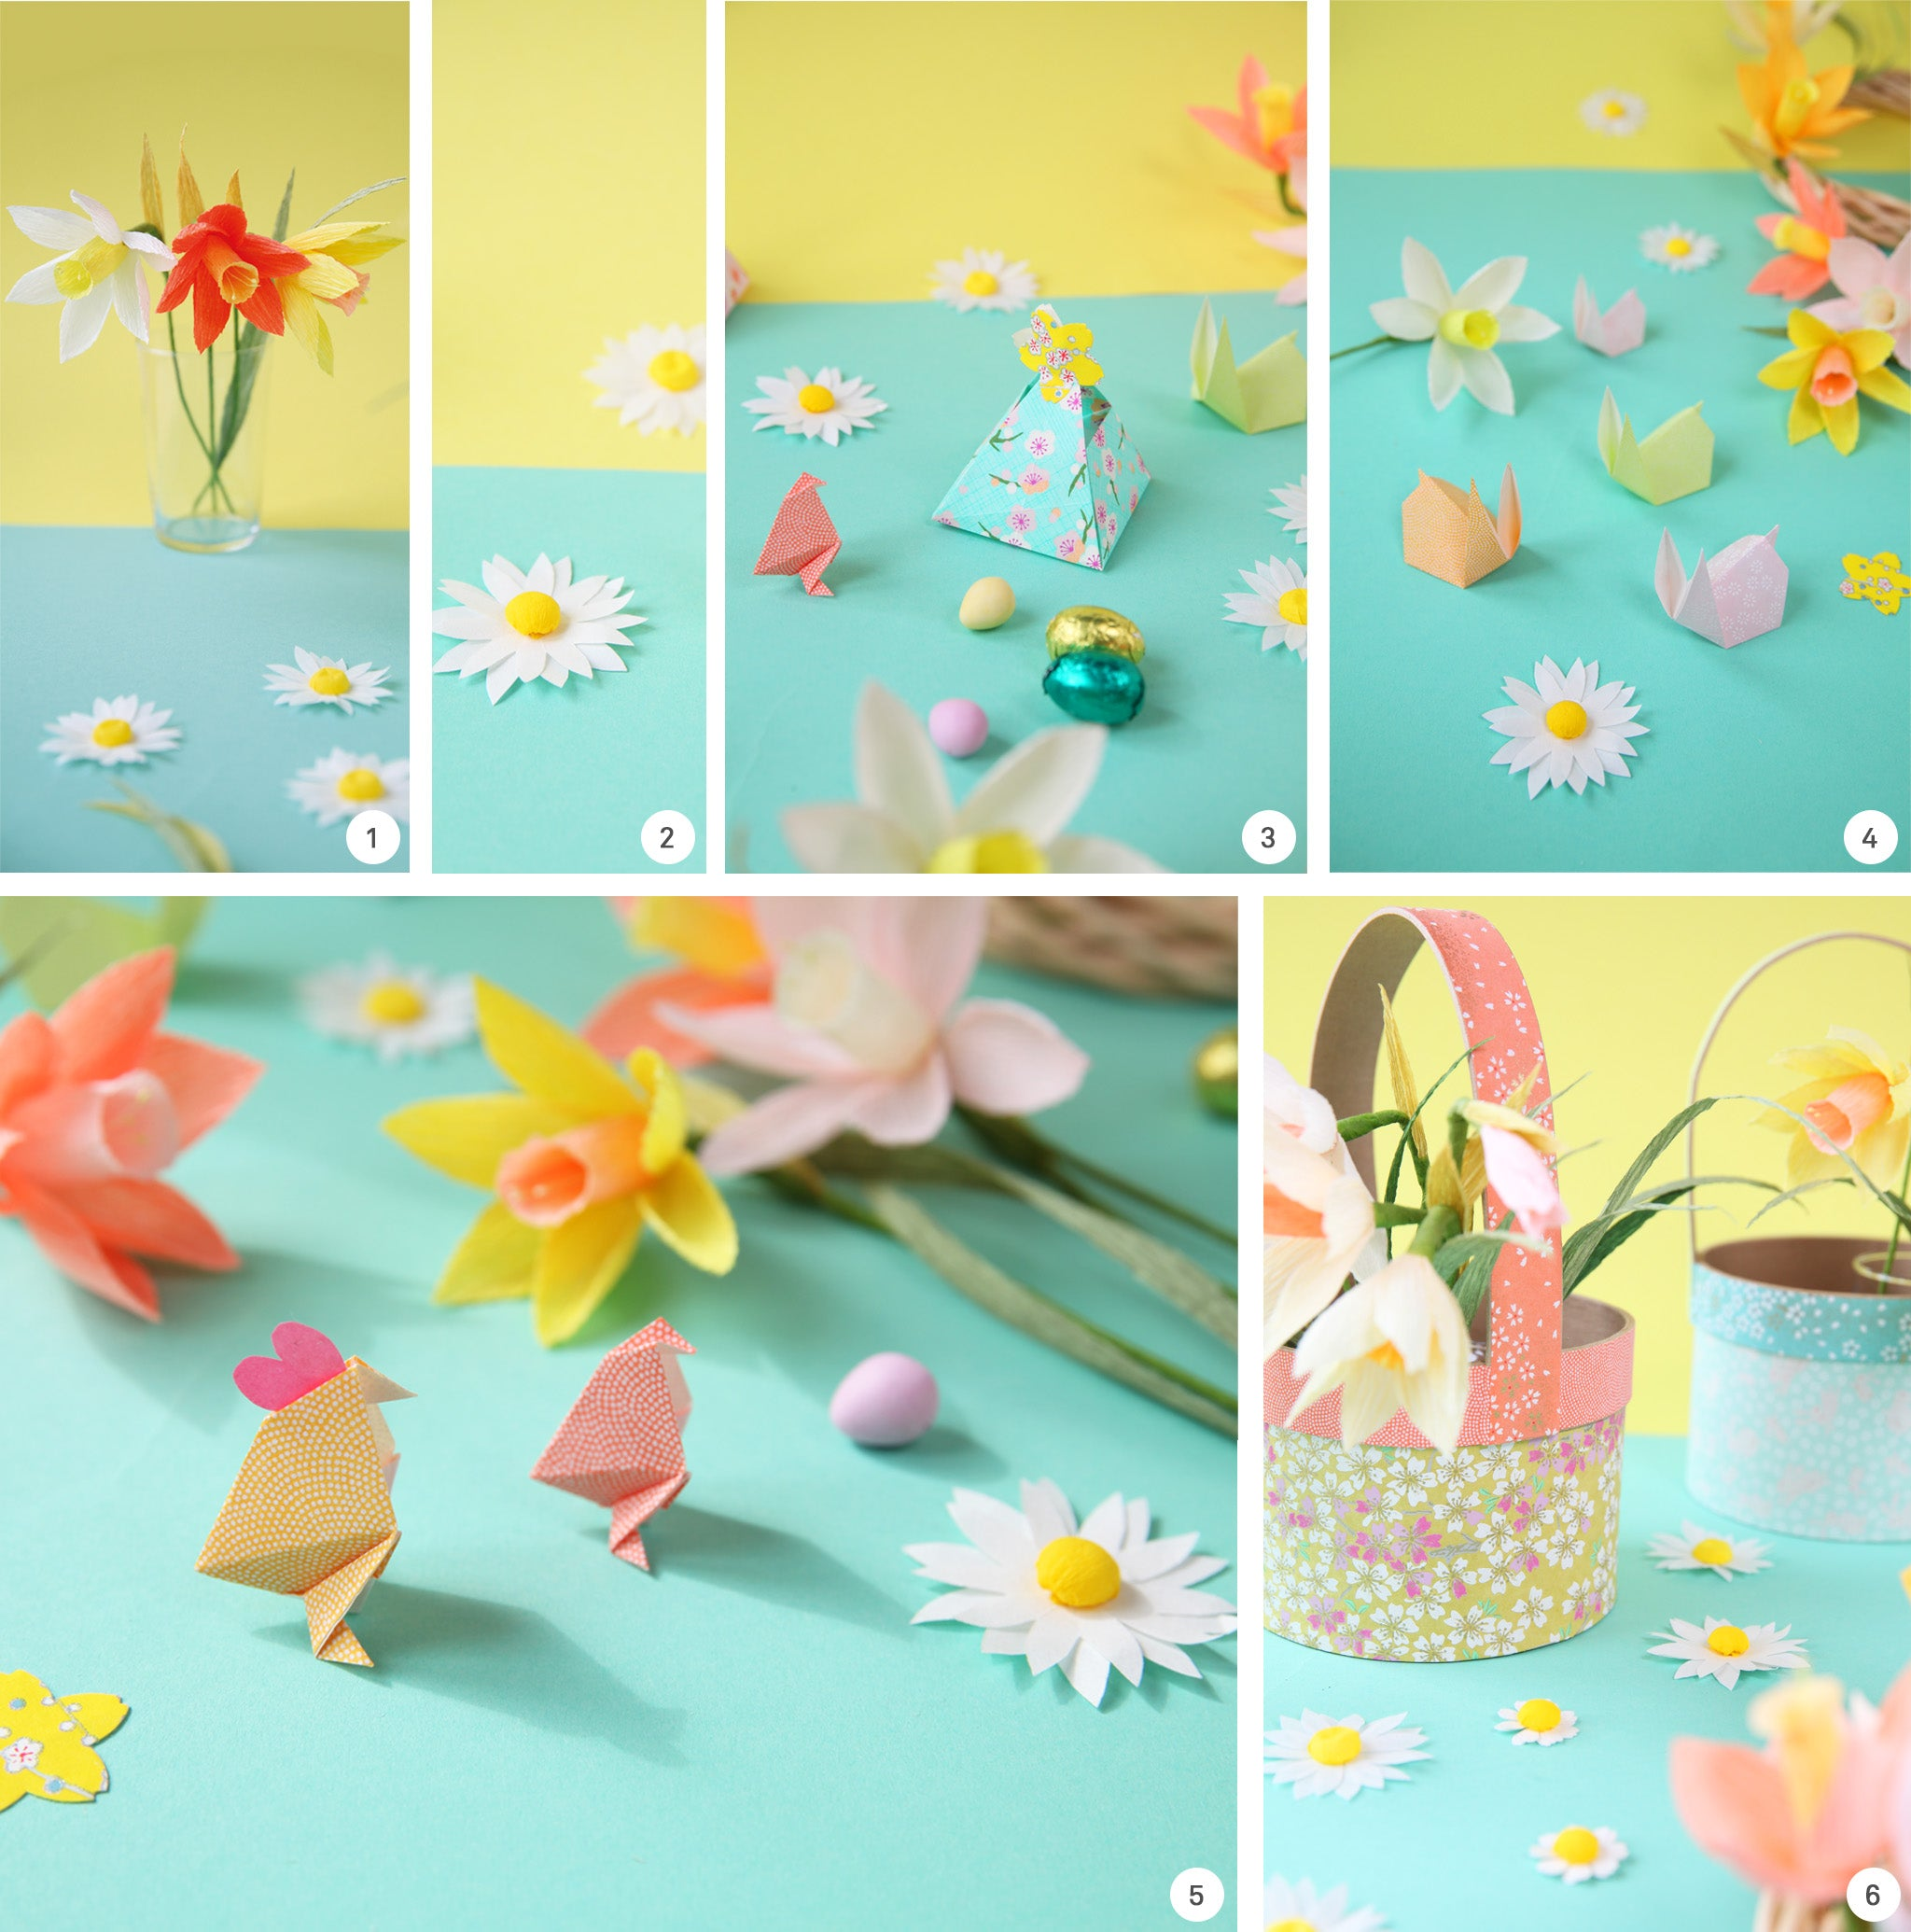 article-blog-tutos-6-diy-paques-ambiance-2